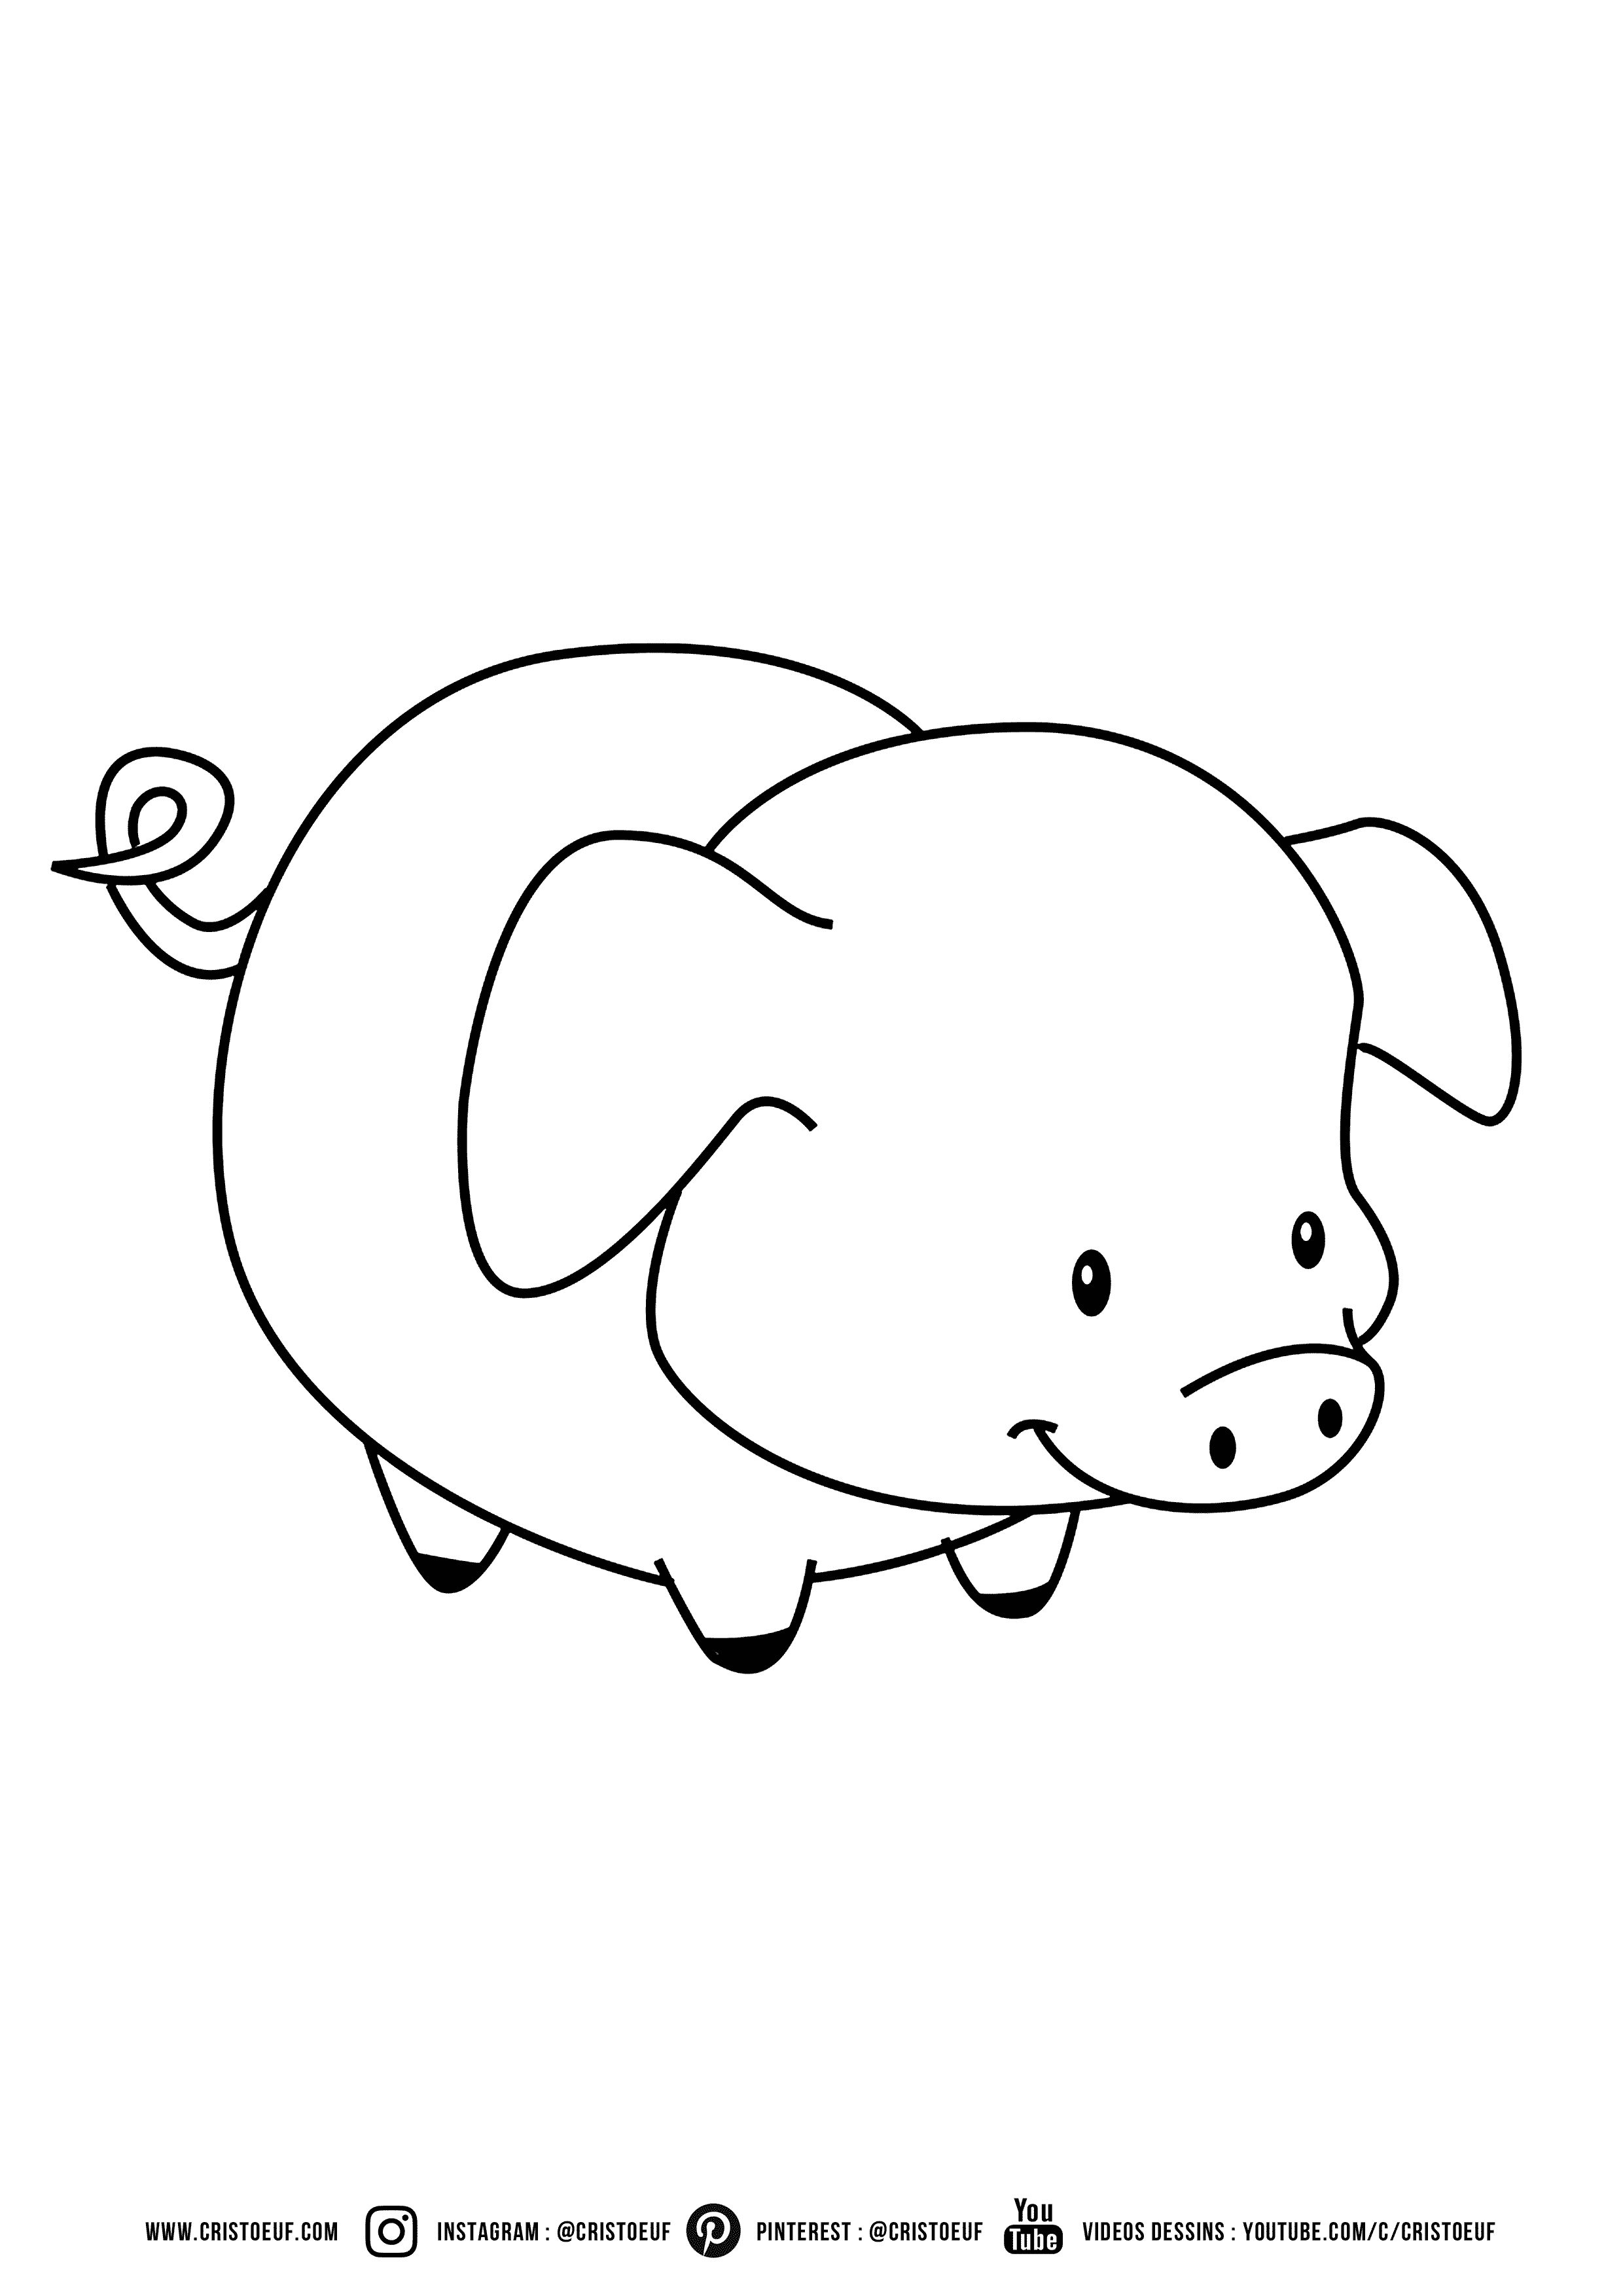 Coloriage Pig Cartoon Cute Enfant Coloring For Kids Colouring